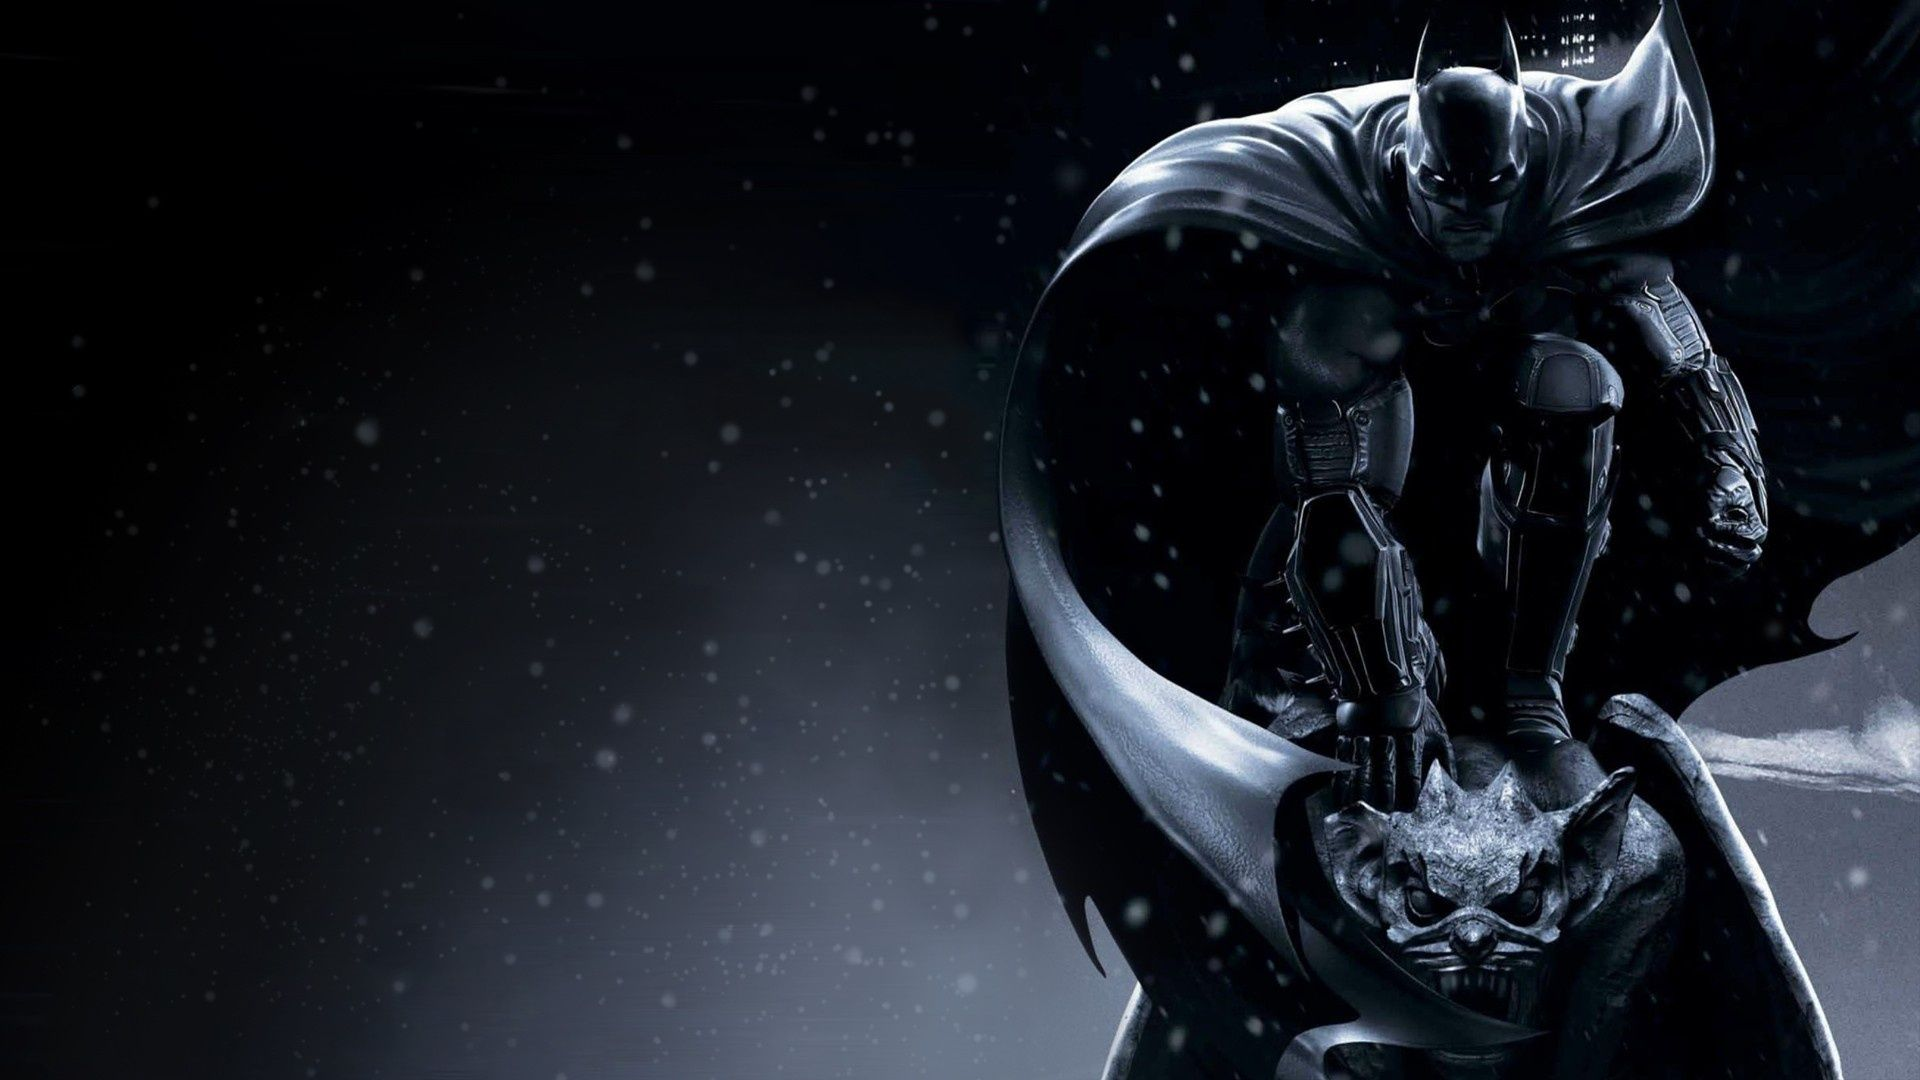 Awesome Batman Wallpapers Top Free Awesome Batman Backgrounds Wallpaperaccess